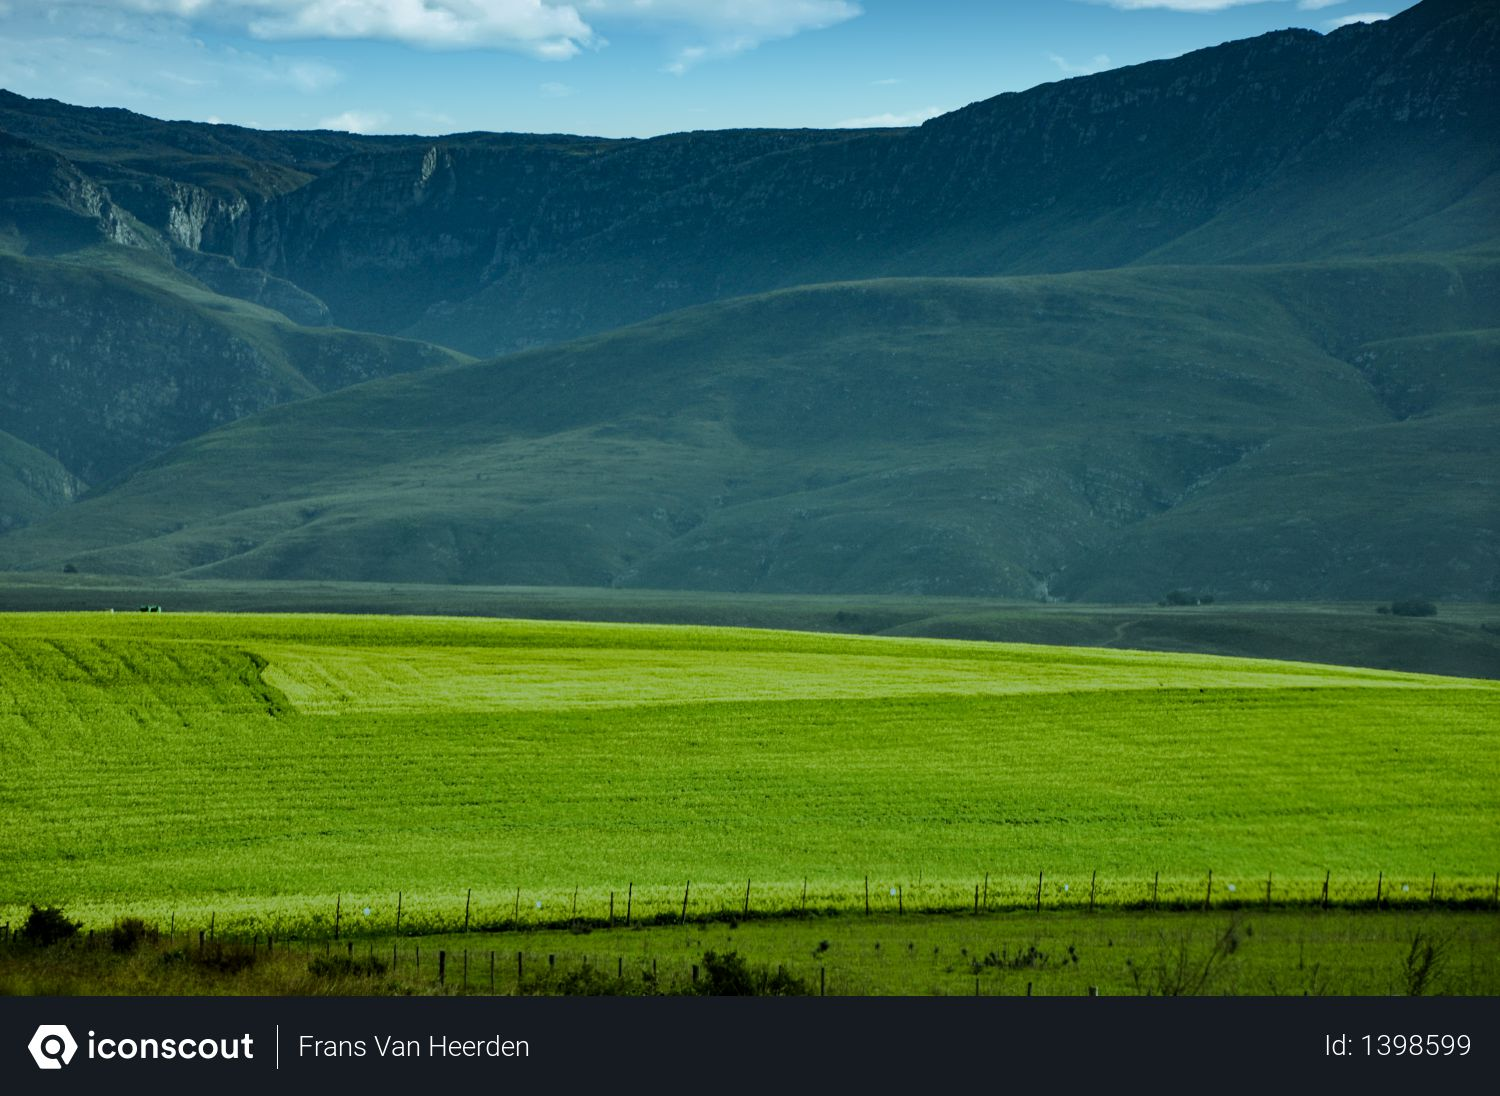 Blue mountains, field, hills Photo